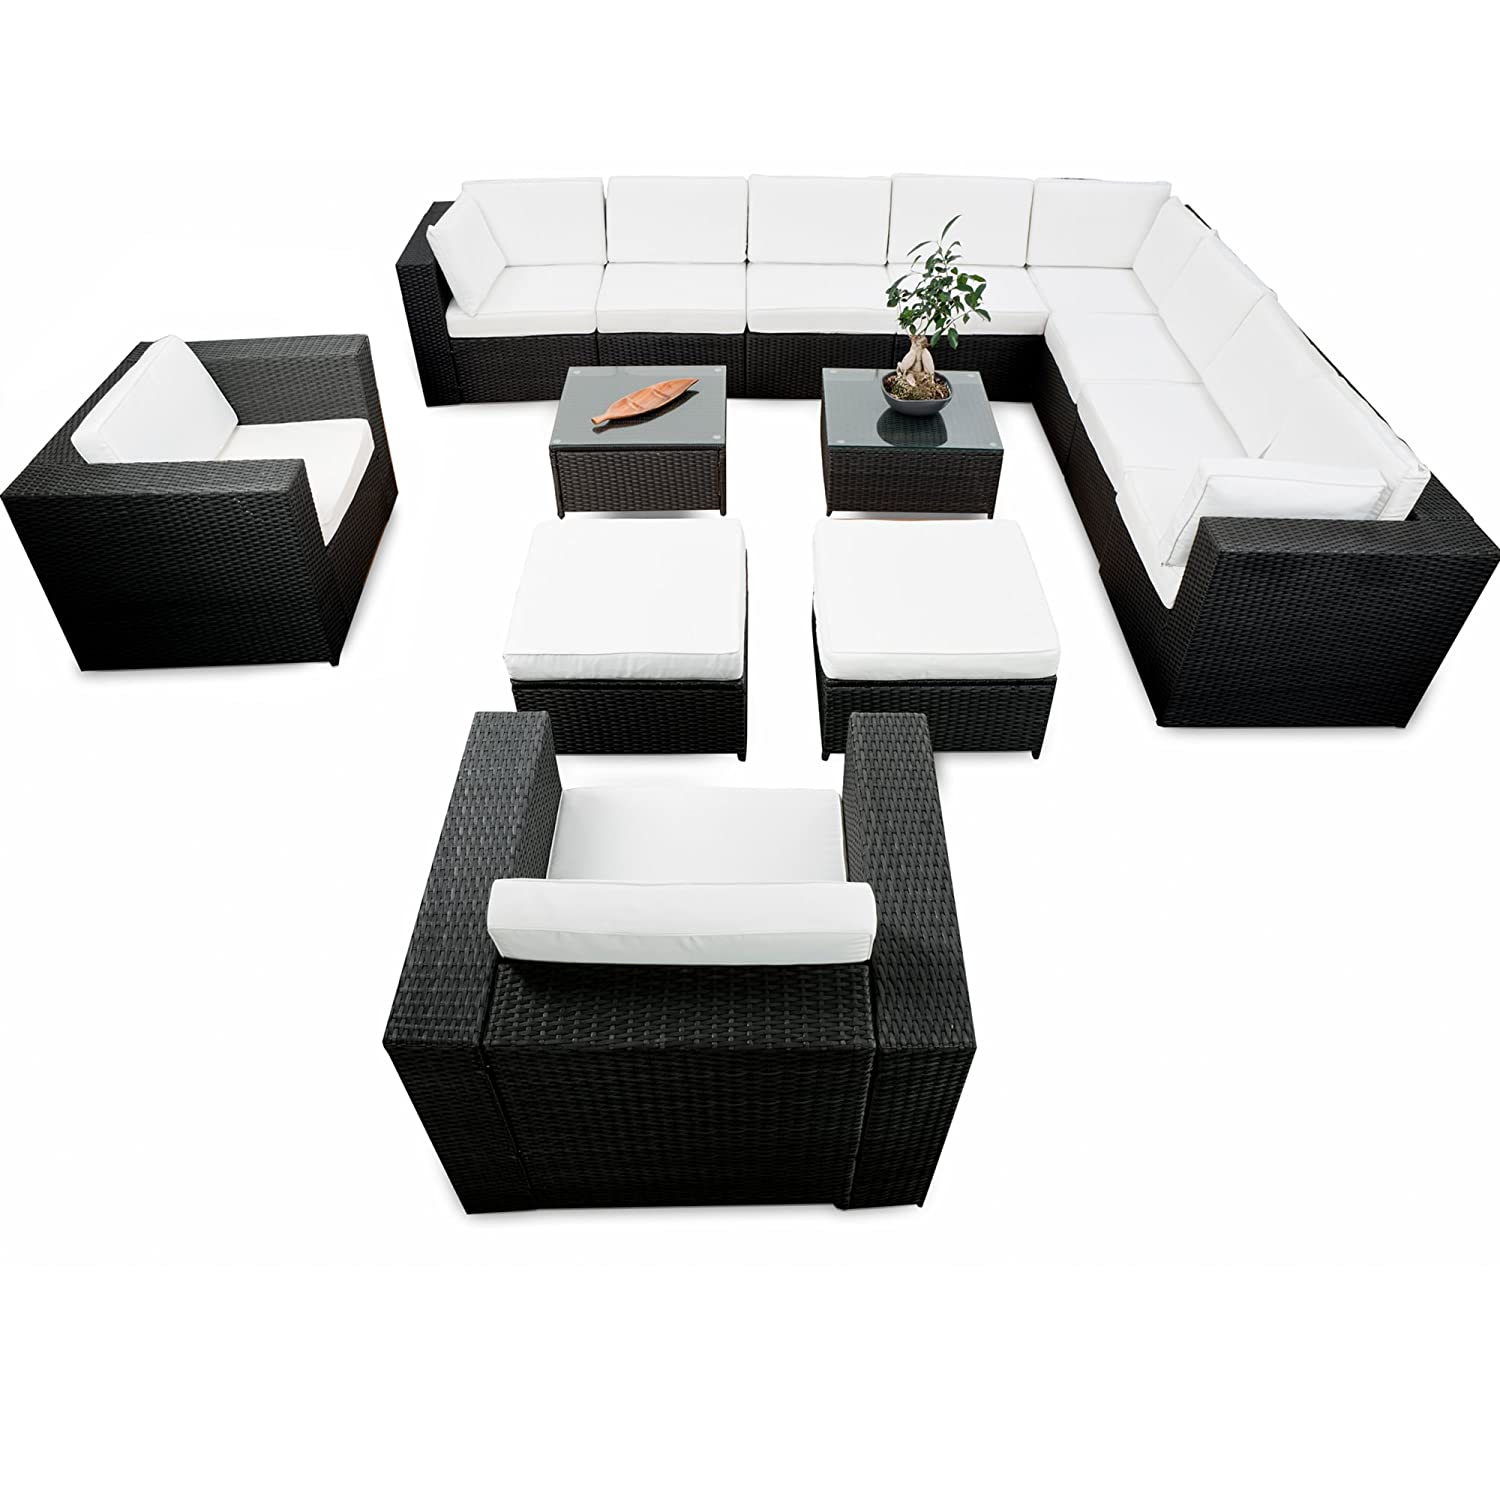 erweiterbares 41tlg xxxl lounge set polyrattan schwarz. Black Bedroom Furniture Sets. Home Design Ideas